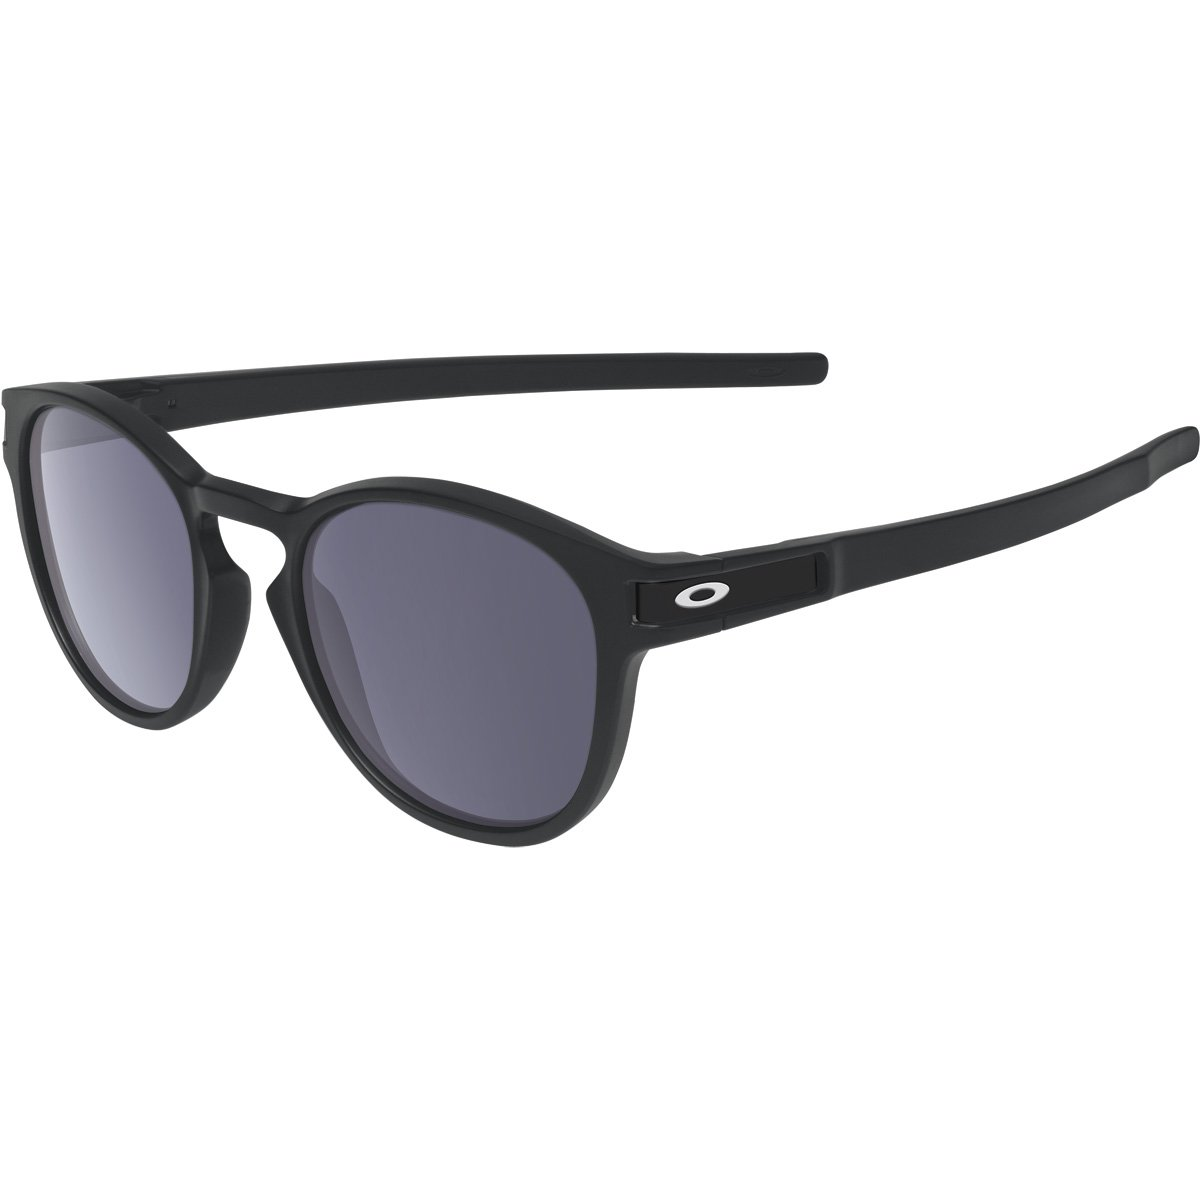 Oakley Men's Latch OO9265-01 Round Sunglasses, Matte Black, 52.6 mm